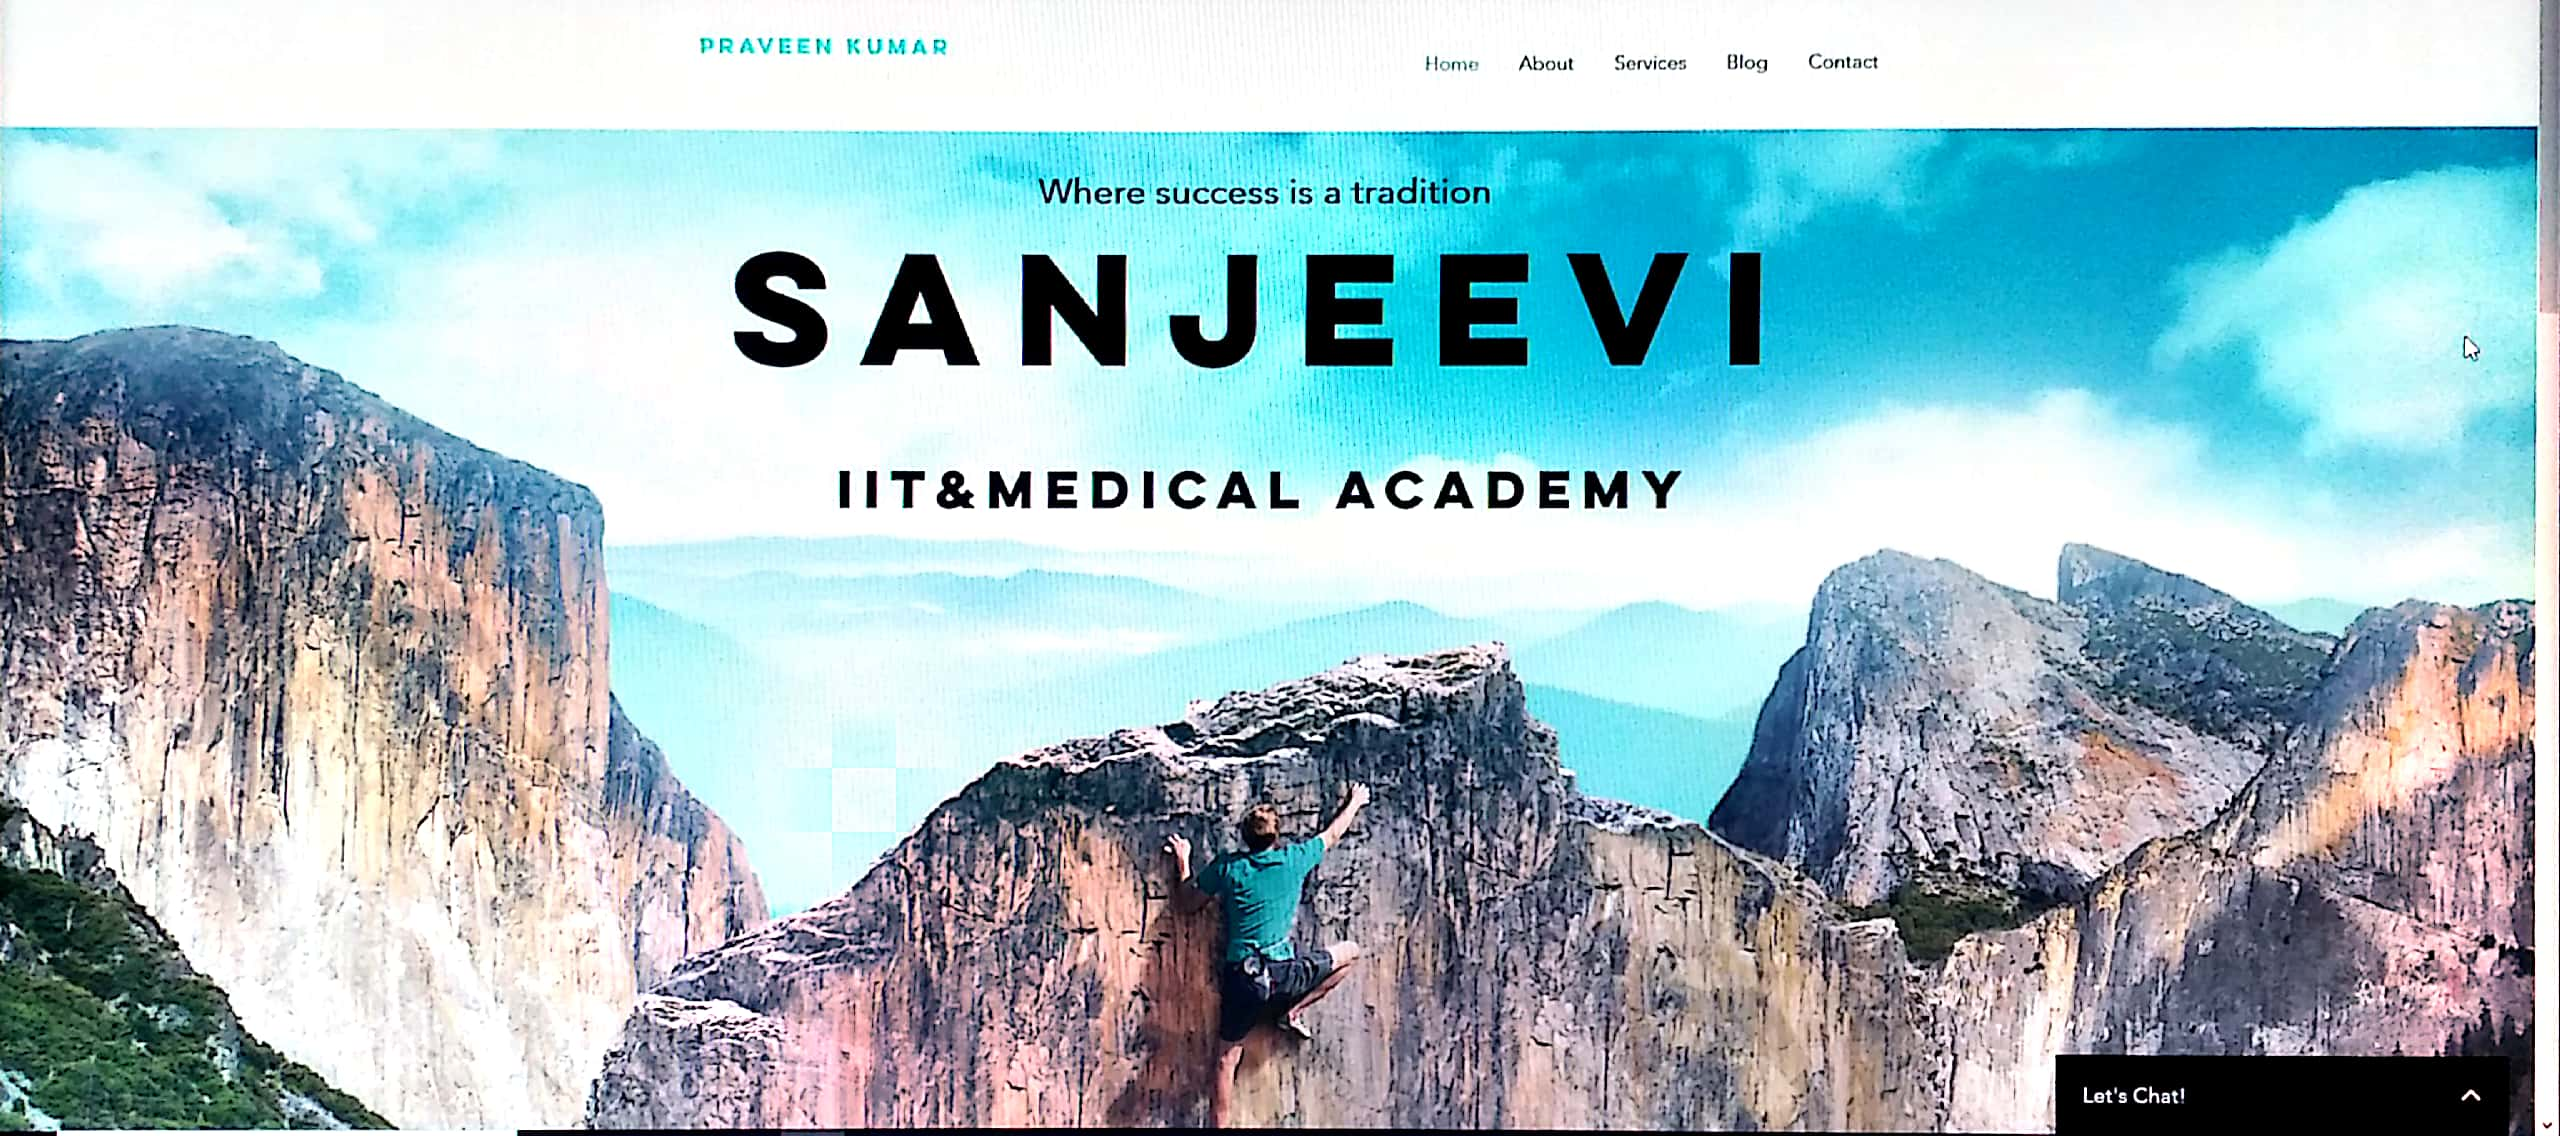 We at the SANJEEVI are aware of potential value of